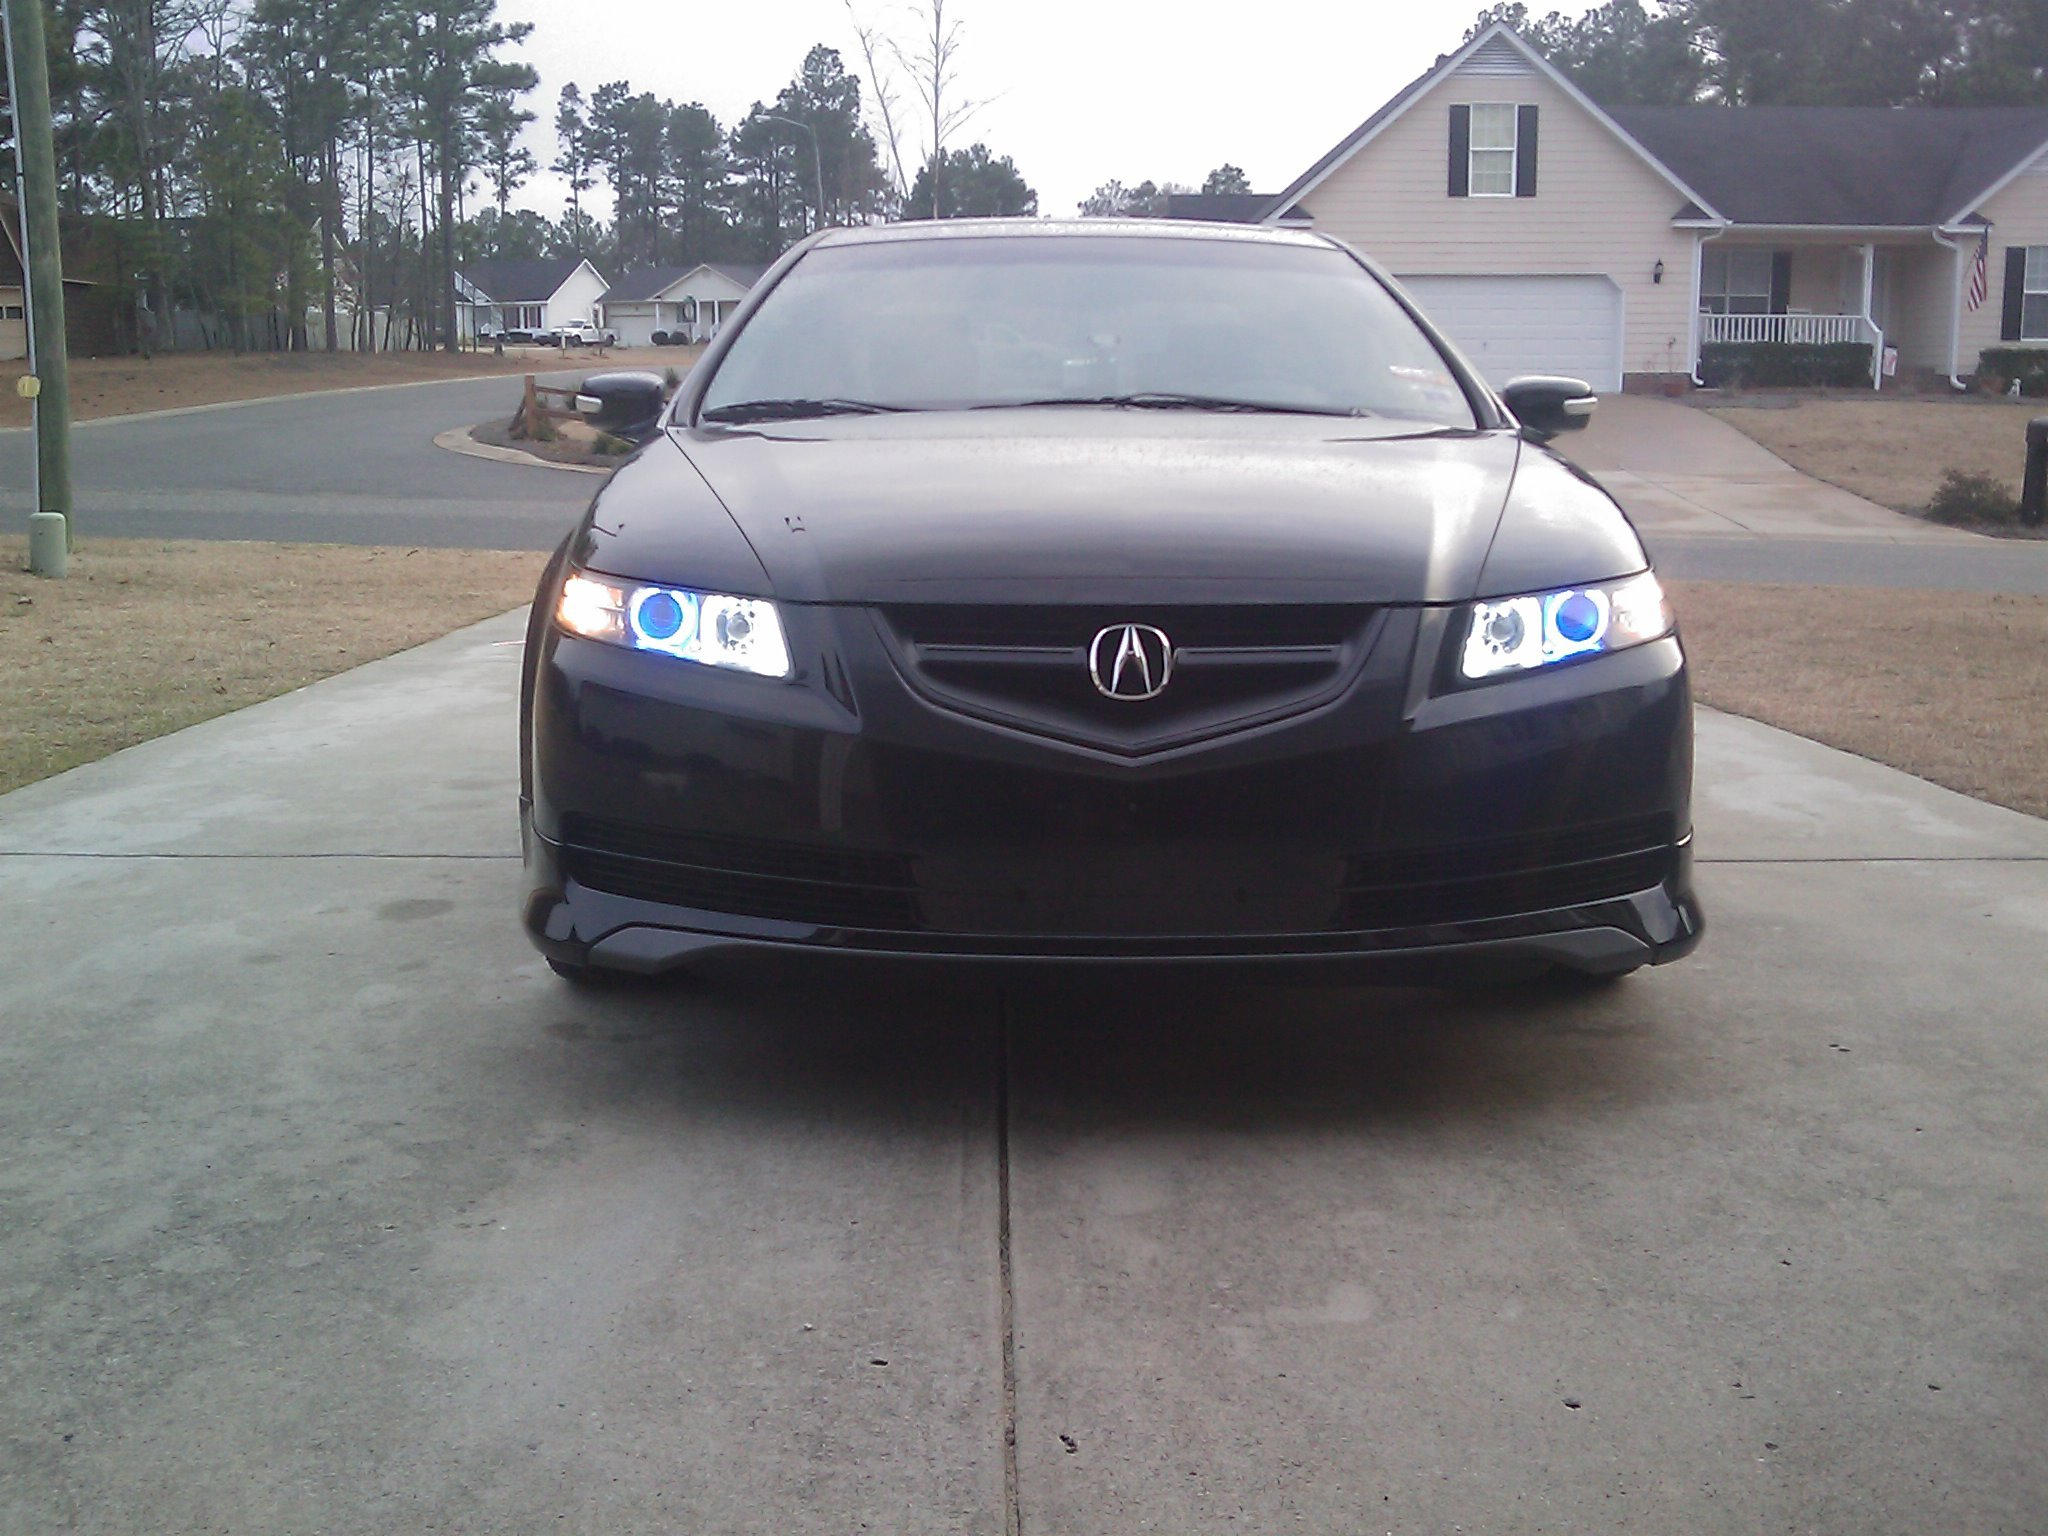 ACETL Acura TL Specs Photos Modification Info At CarDomain - 2004 acura tl front lip